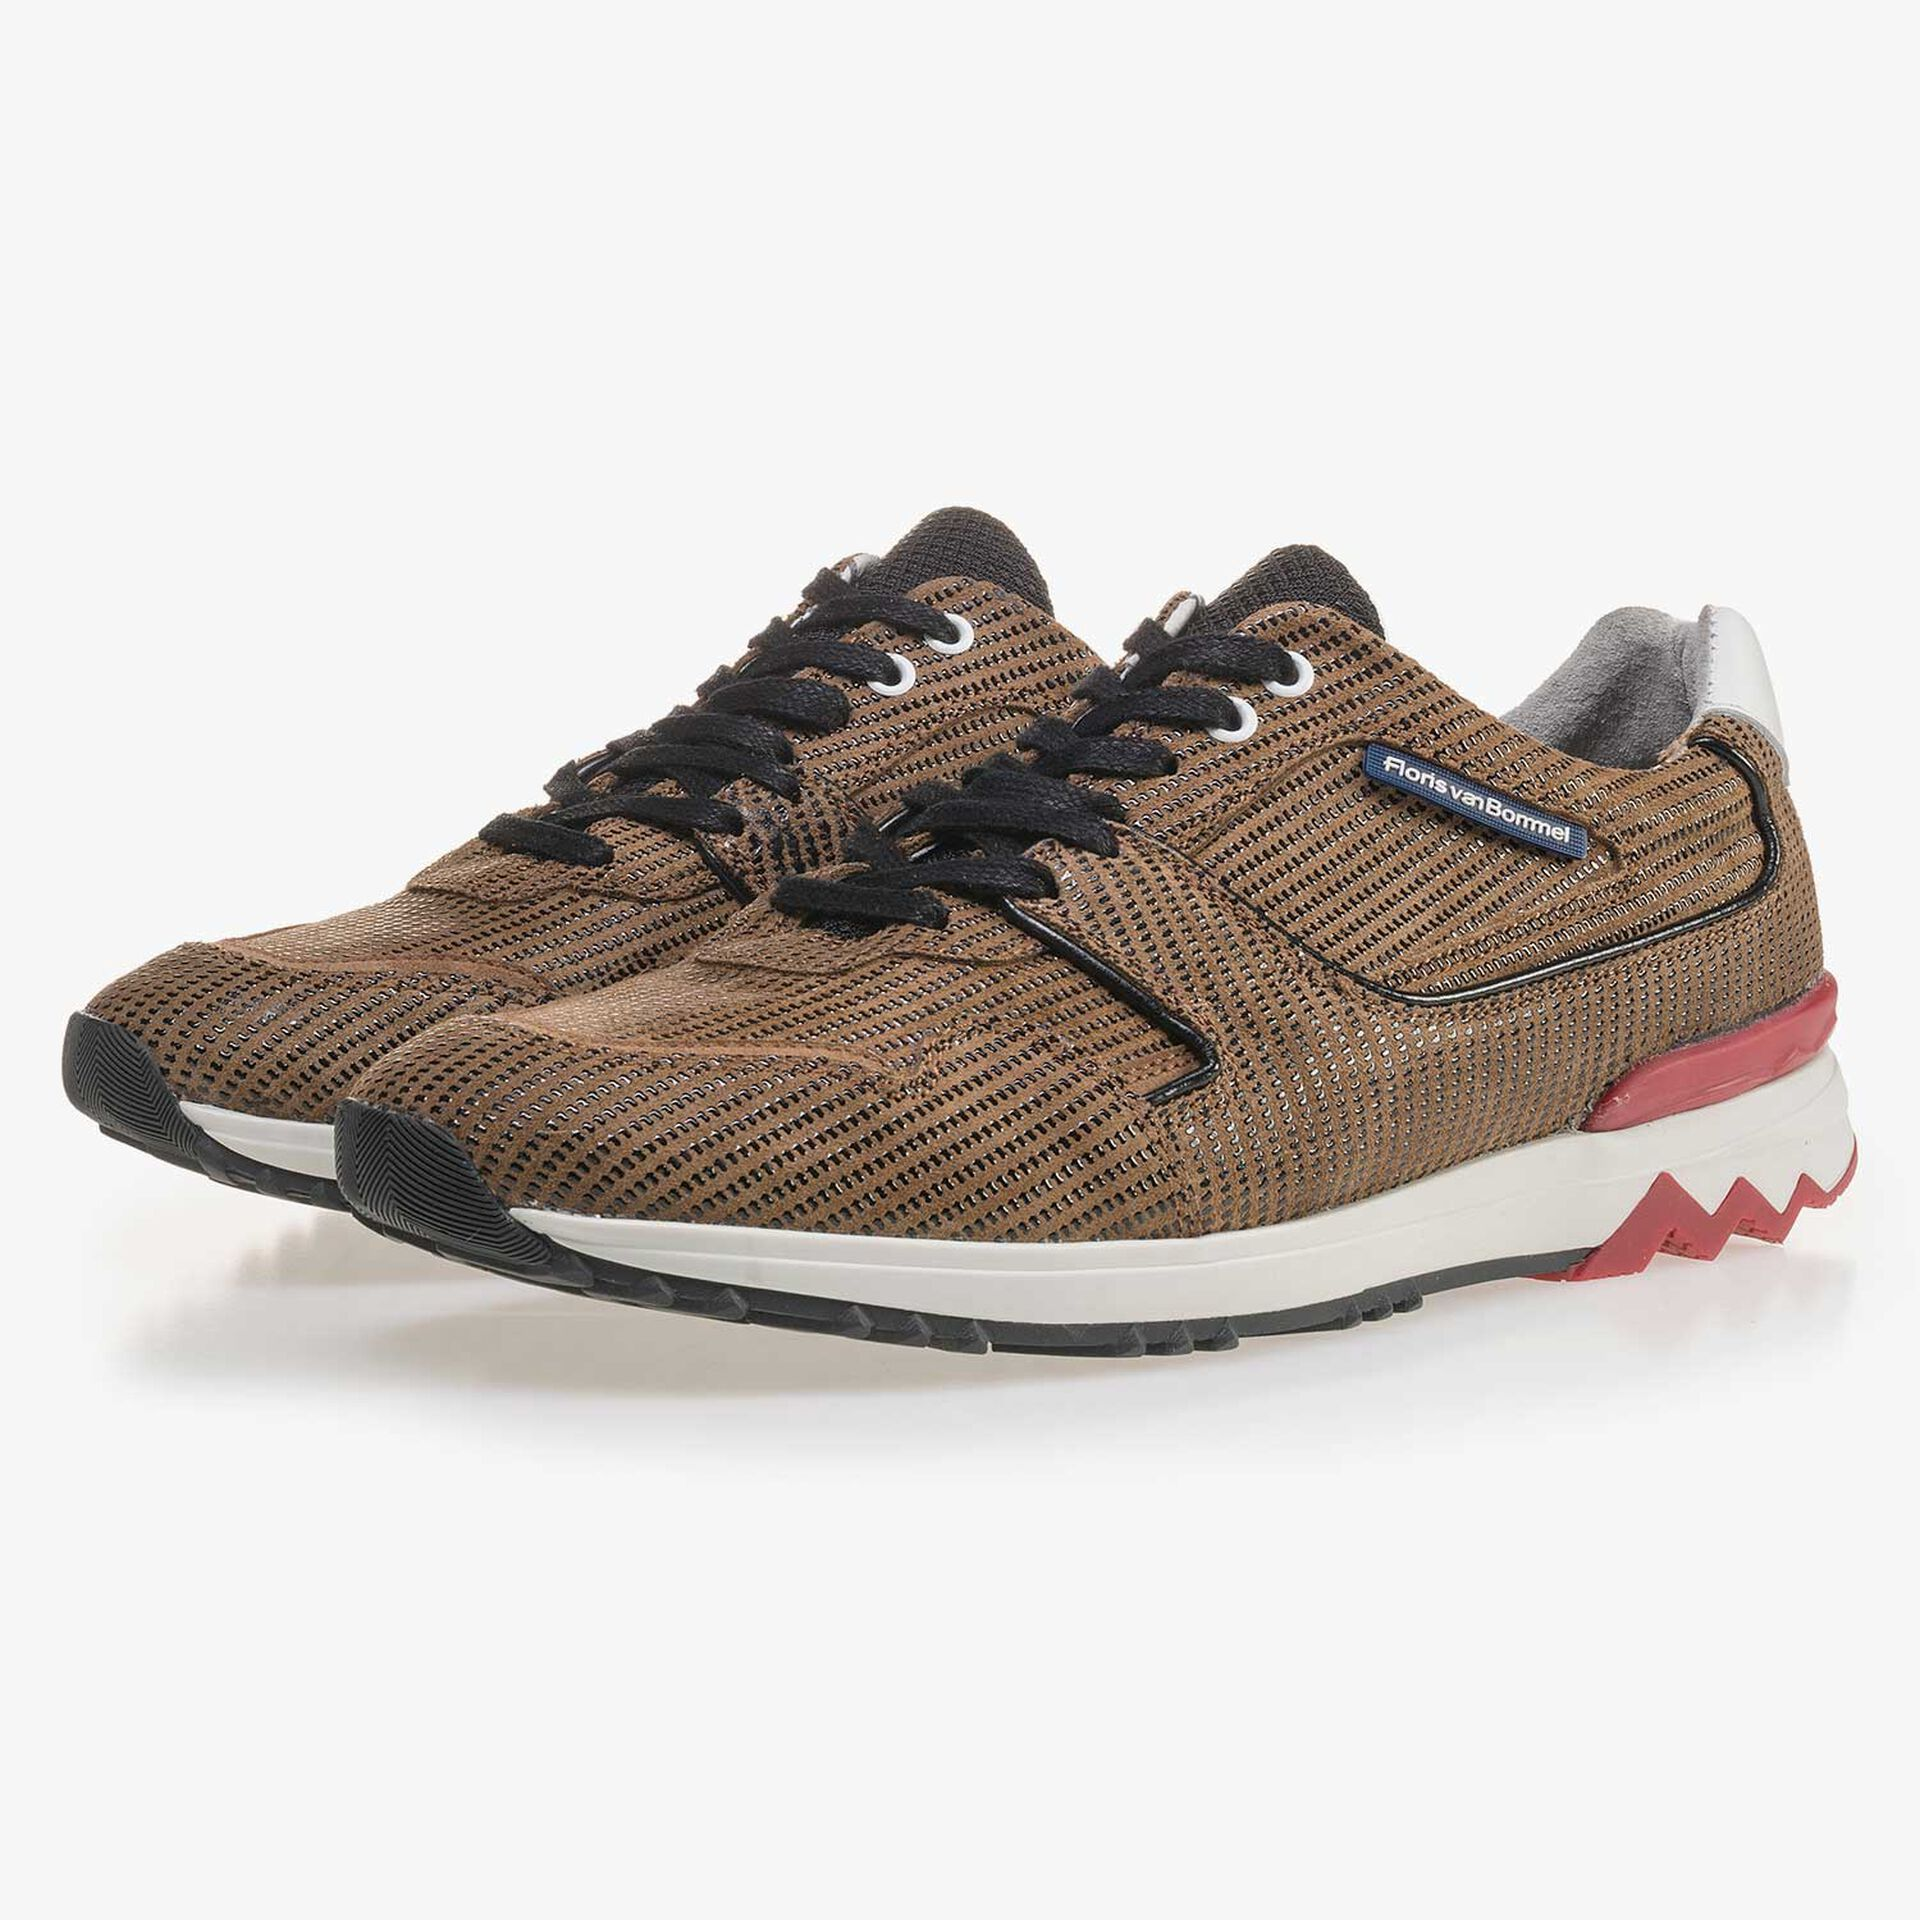 Brown, patterned suede leather sneaker